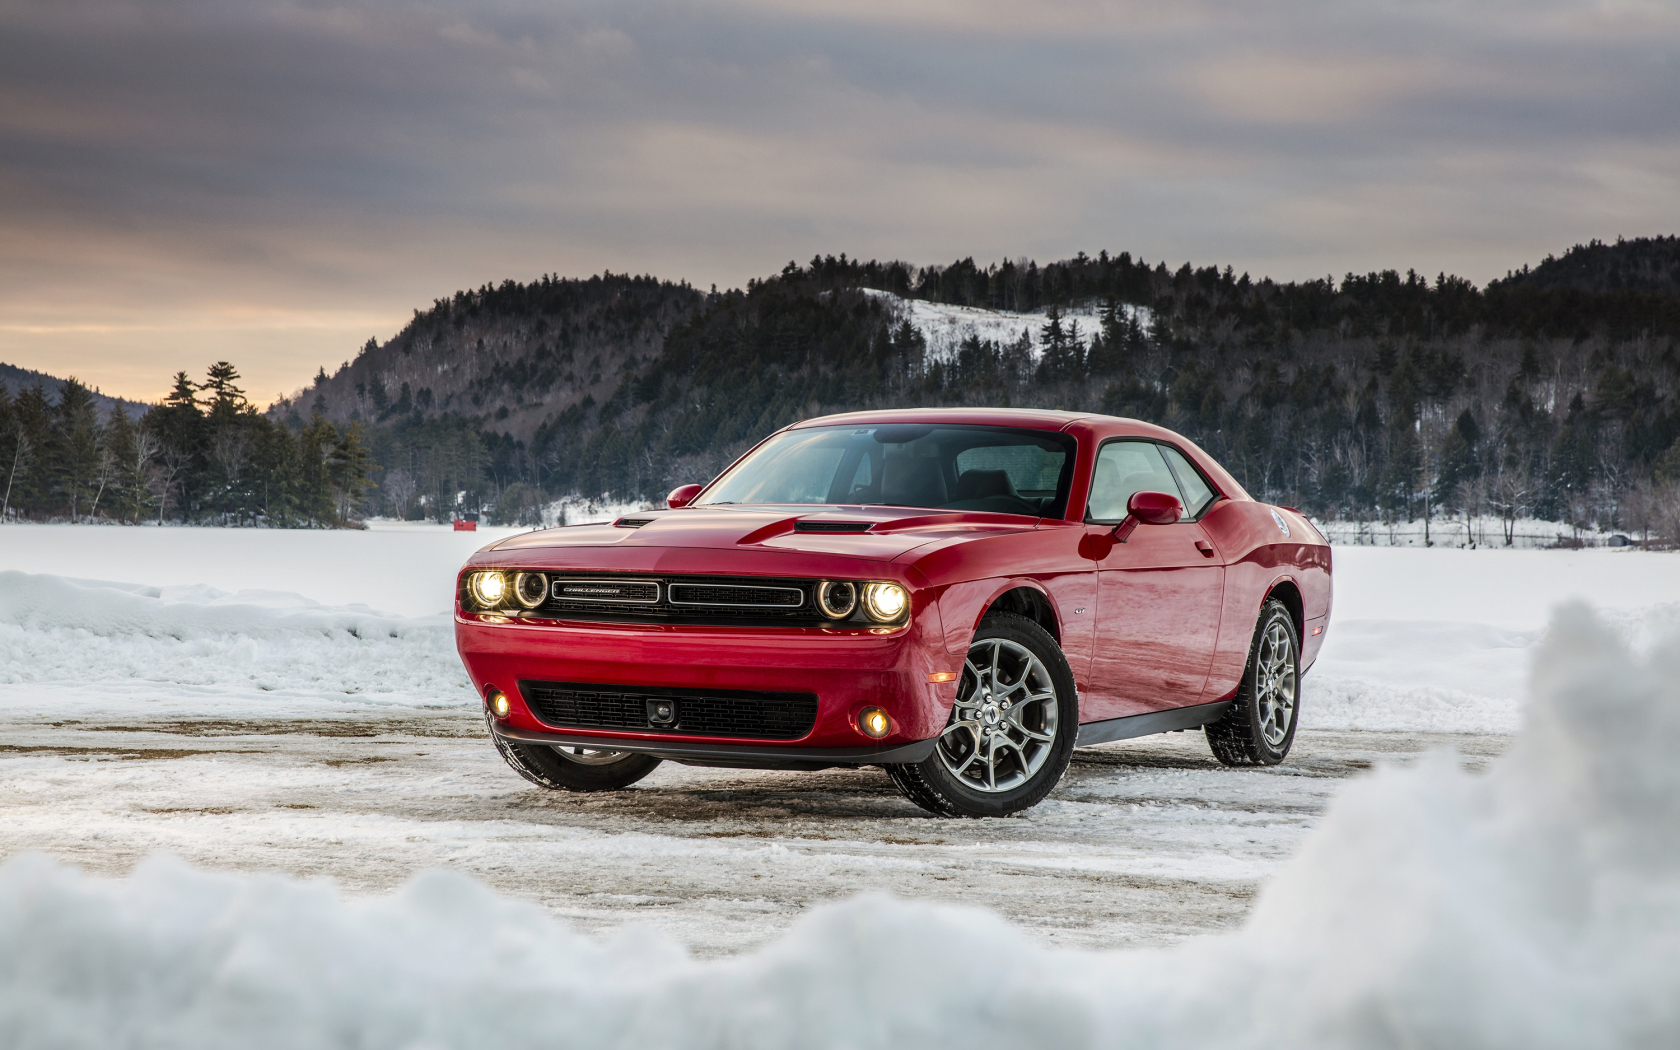 Dodge challenger, red muscle car, 1680x1050 wallpaper